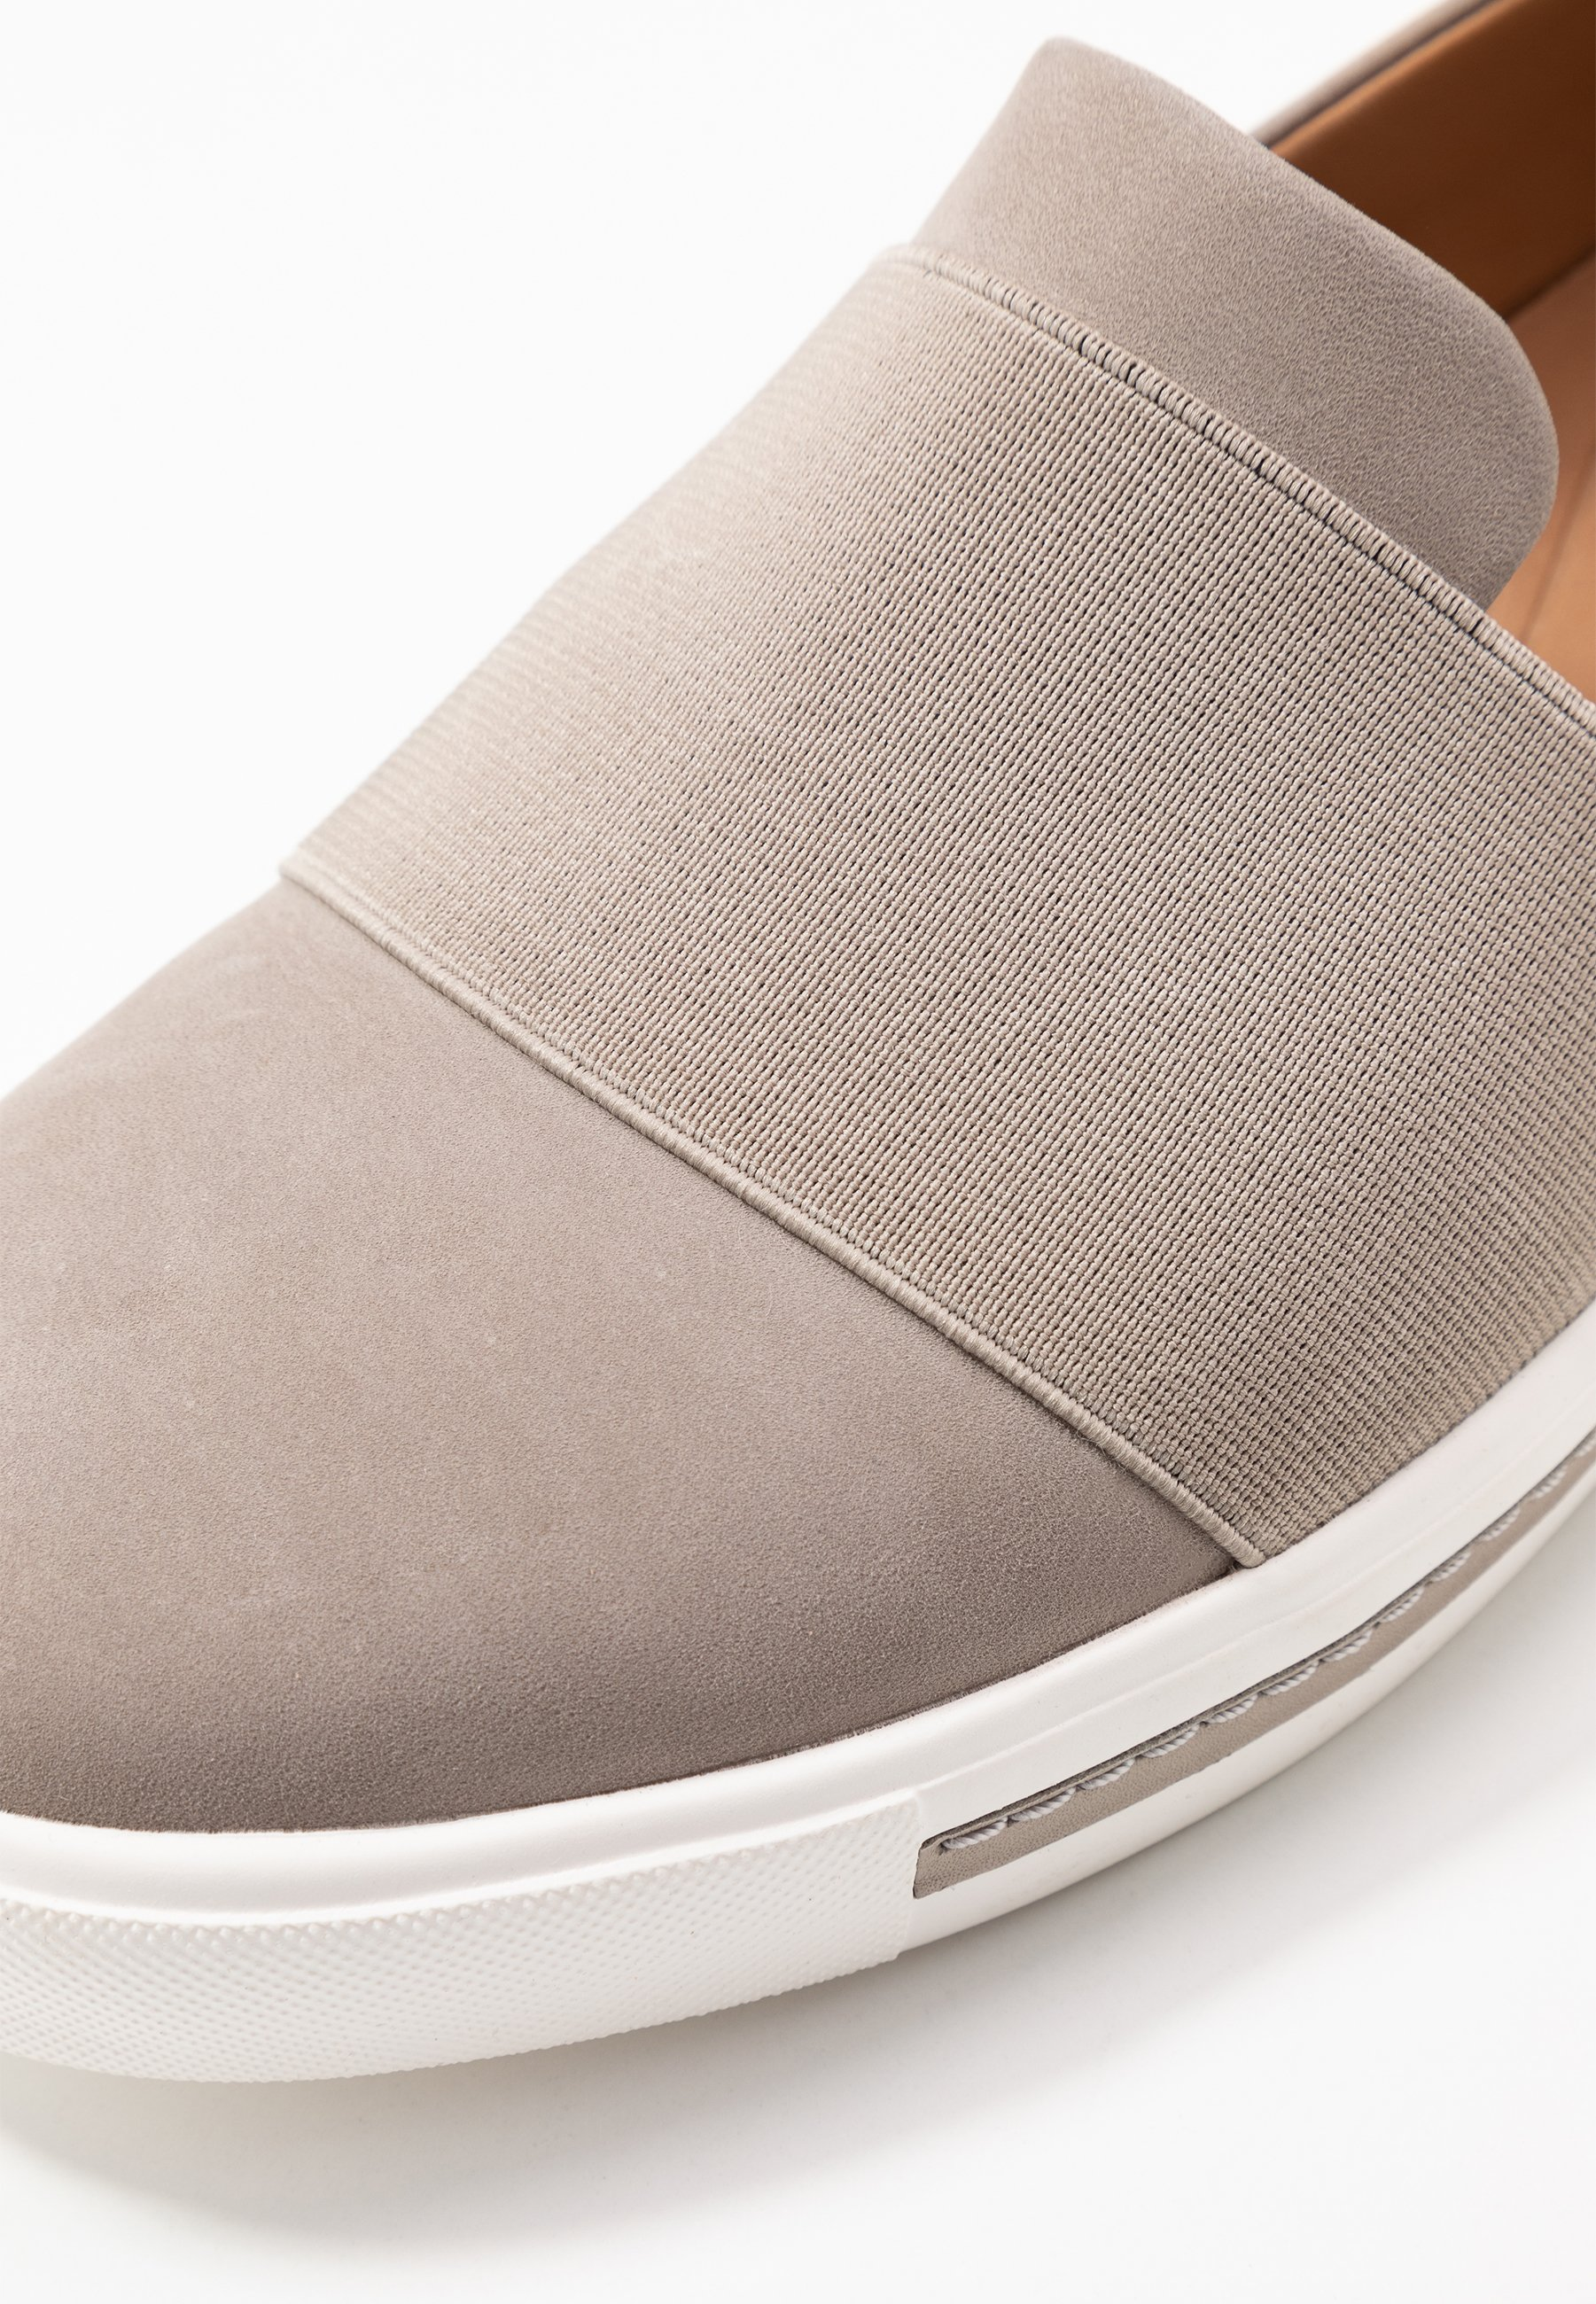 Clarks Unstructured Maui Step - Slippers Stone/lysgrå